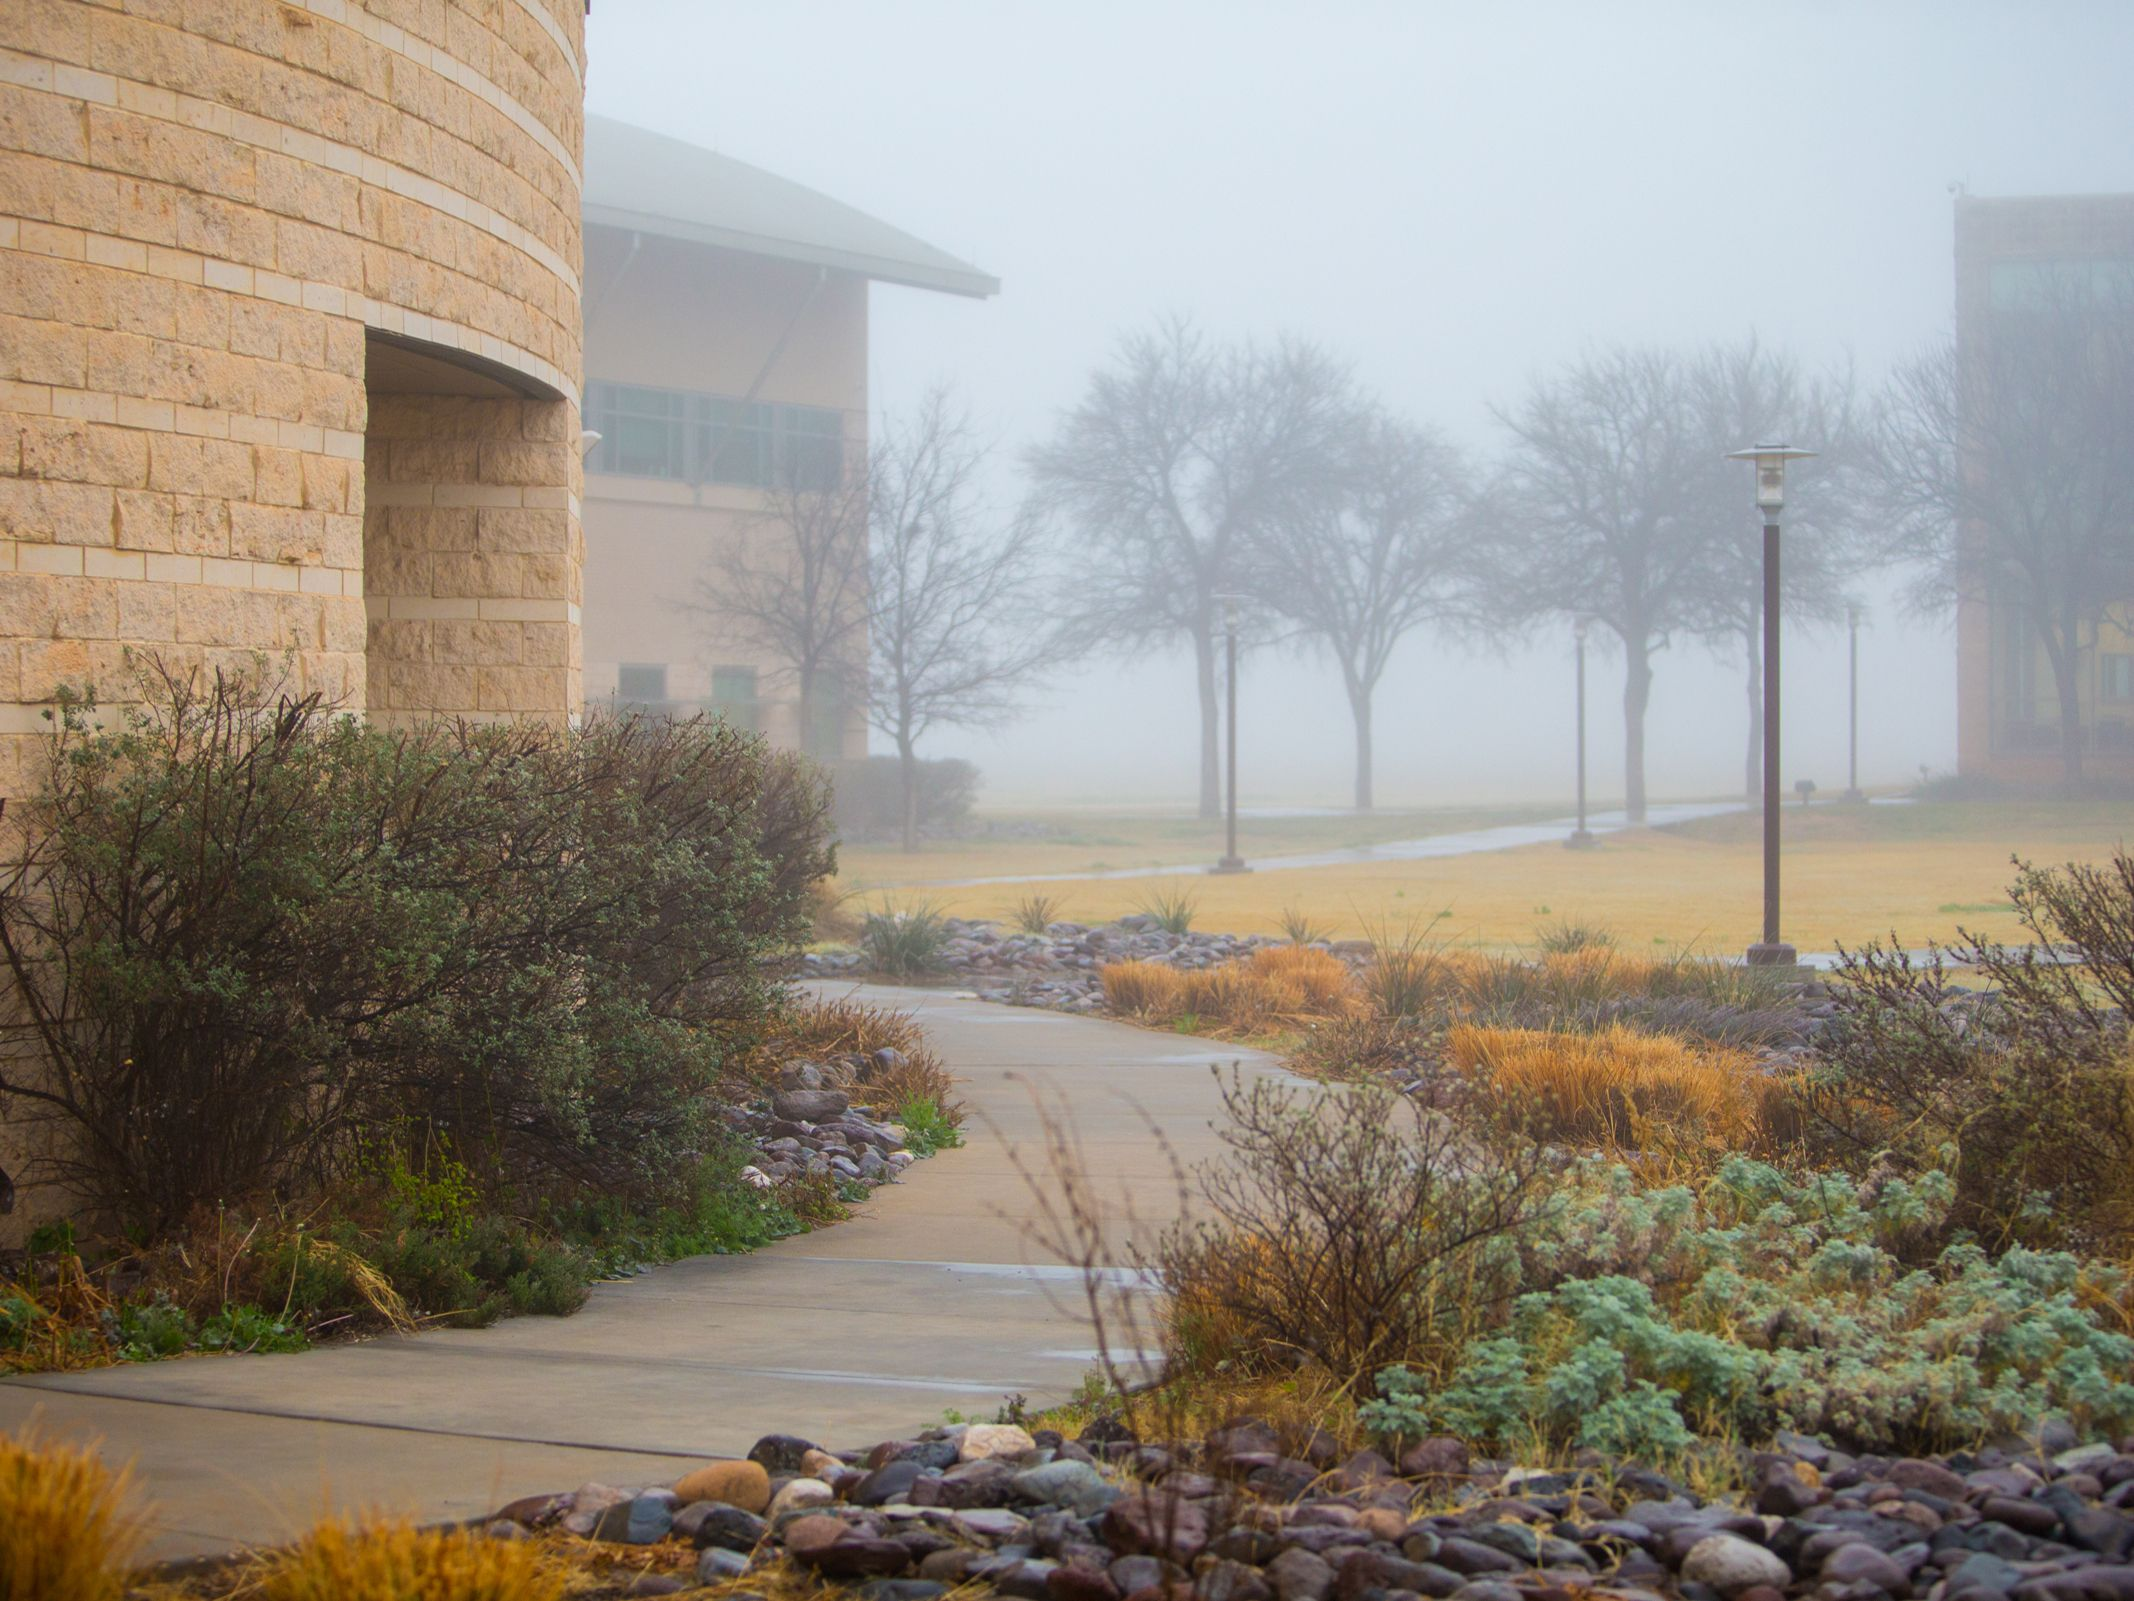 Picture of foggy campus